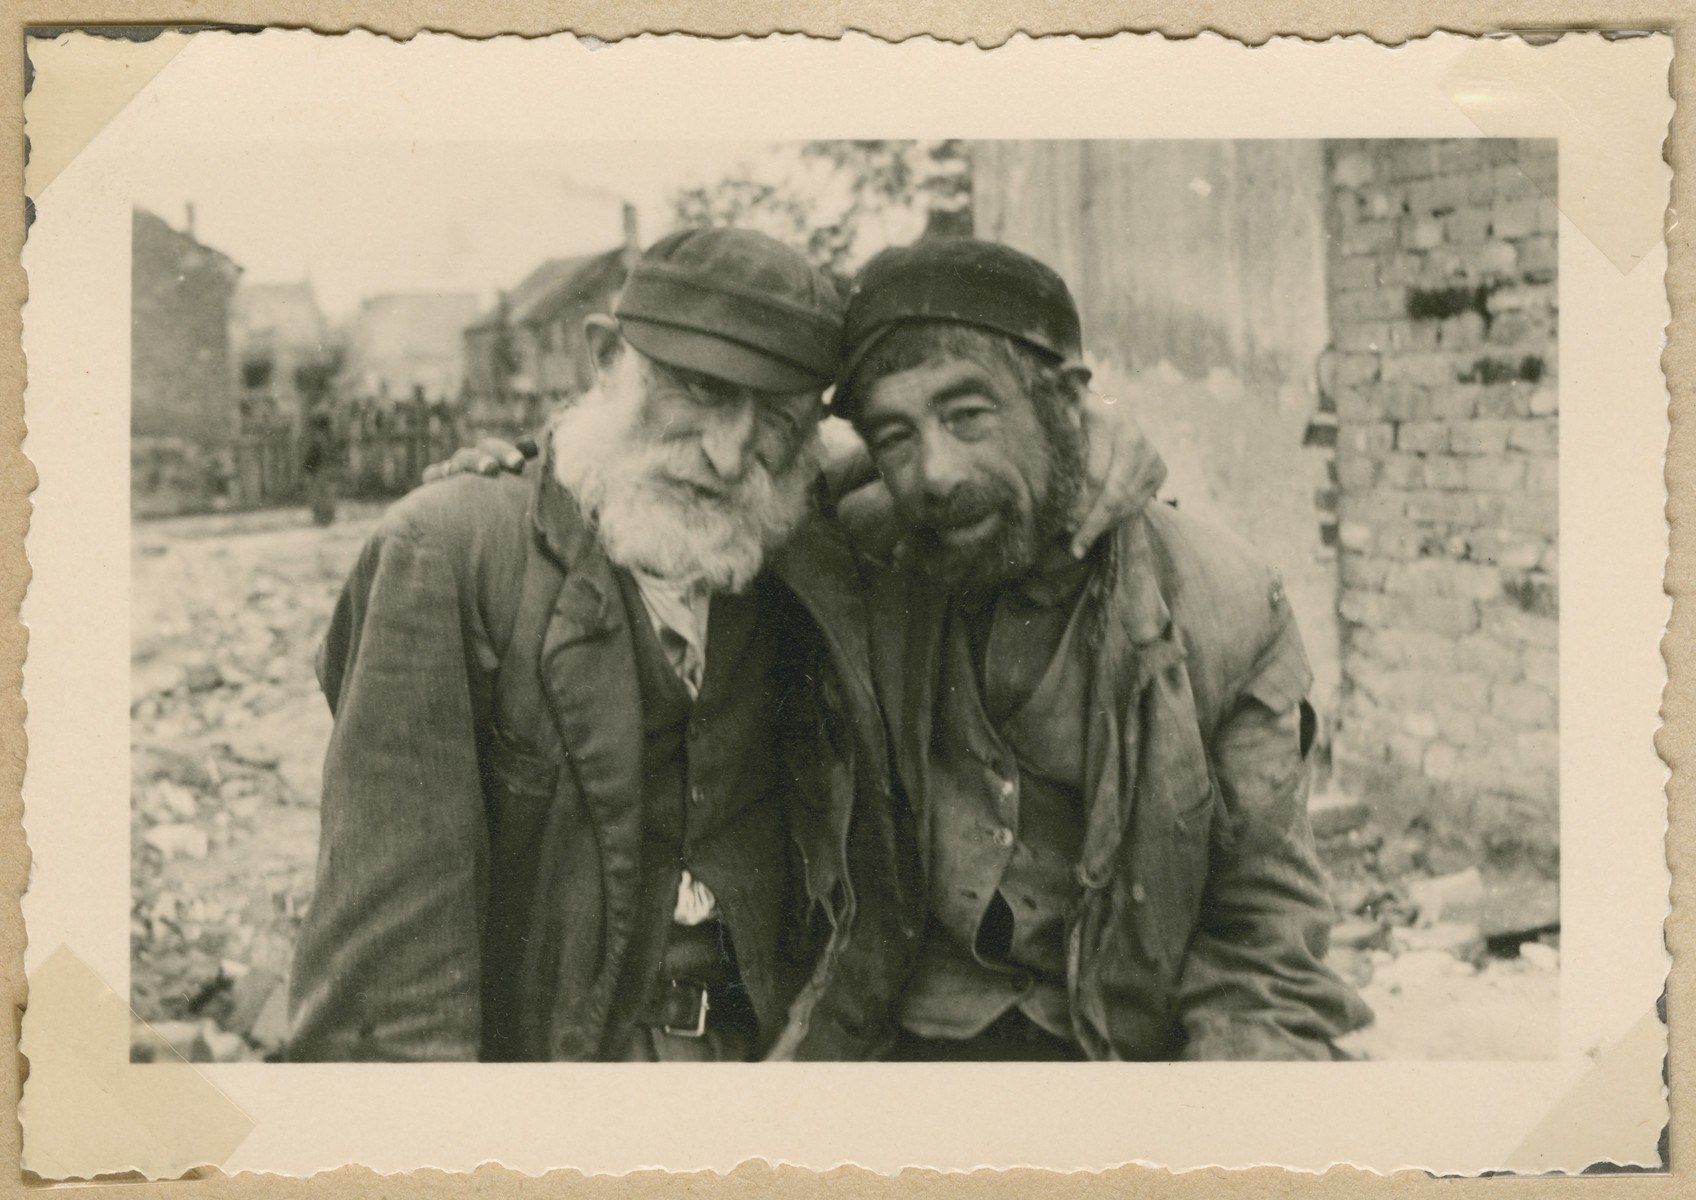 Close-up portrait of two Jewish men in what probably is the Deblin-Irena ghetto.